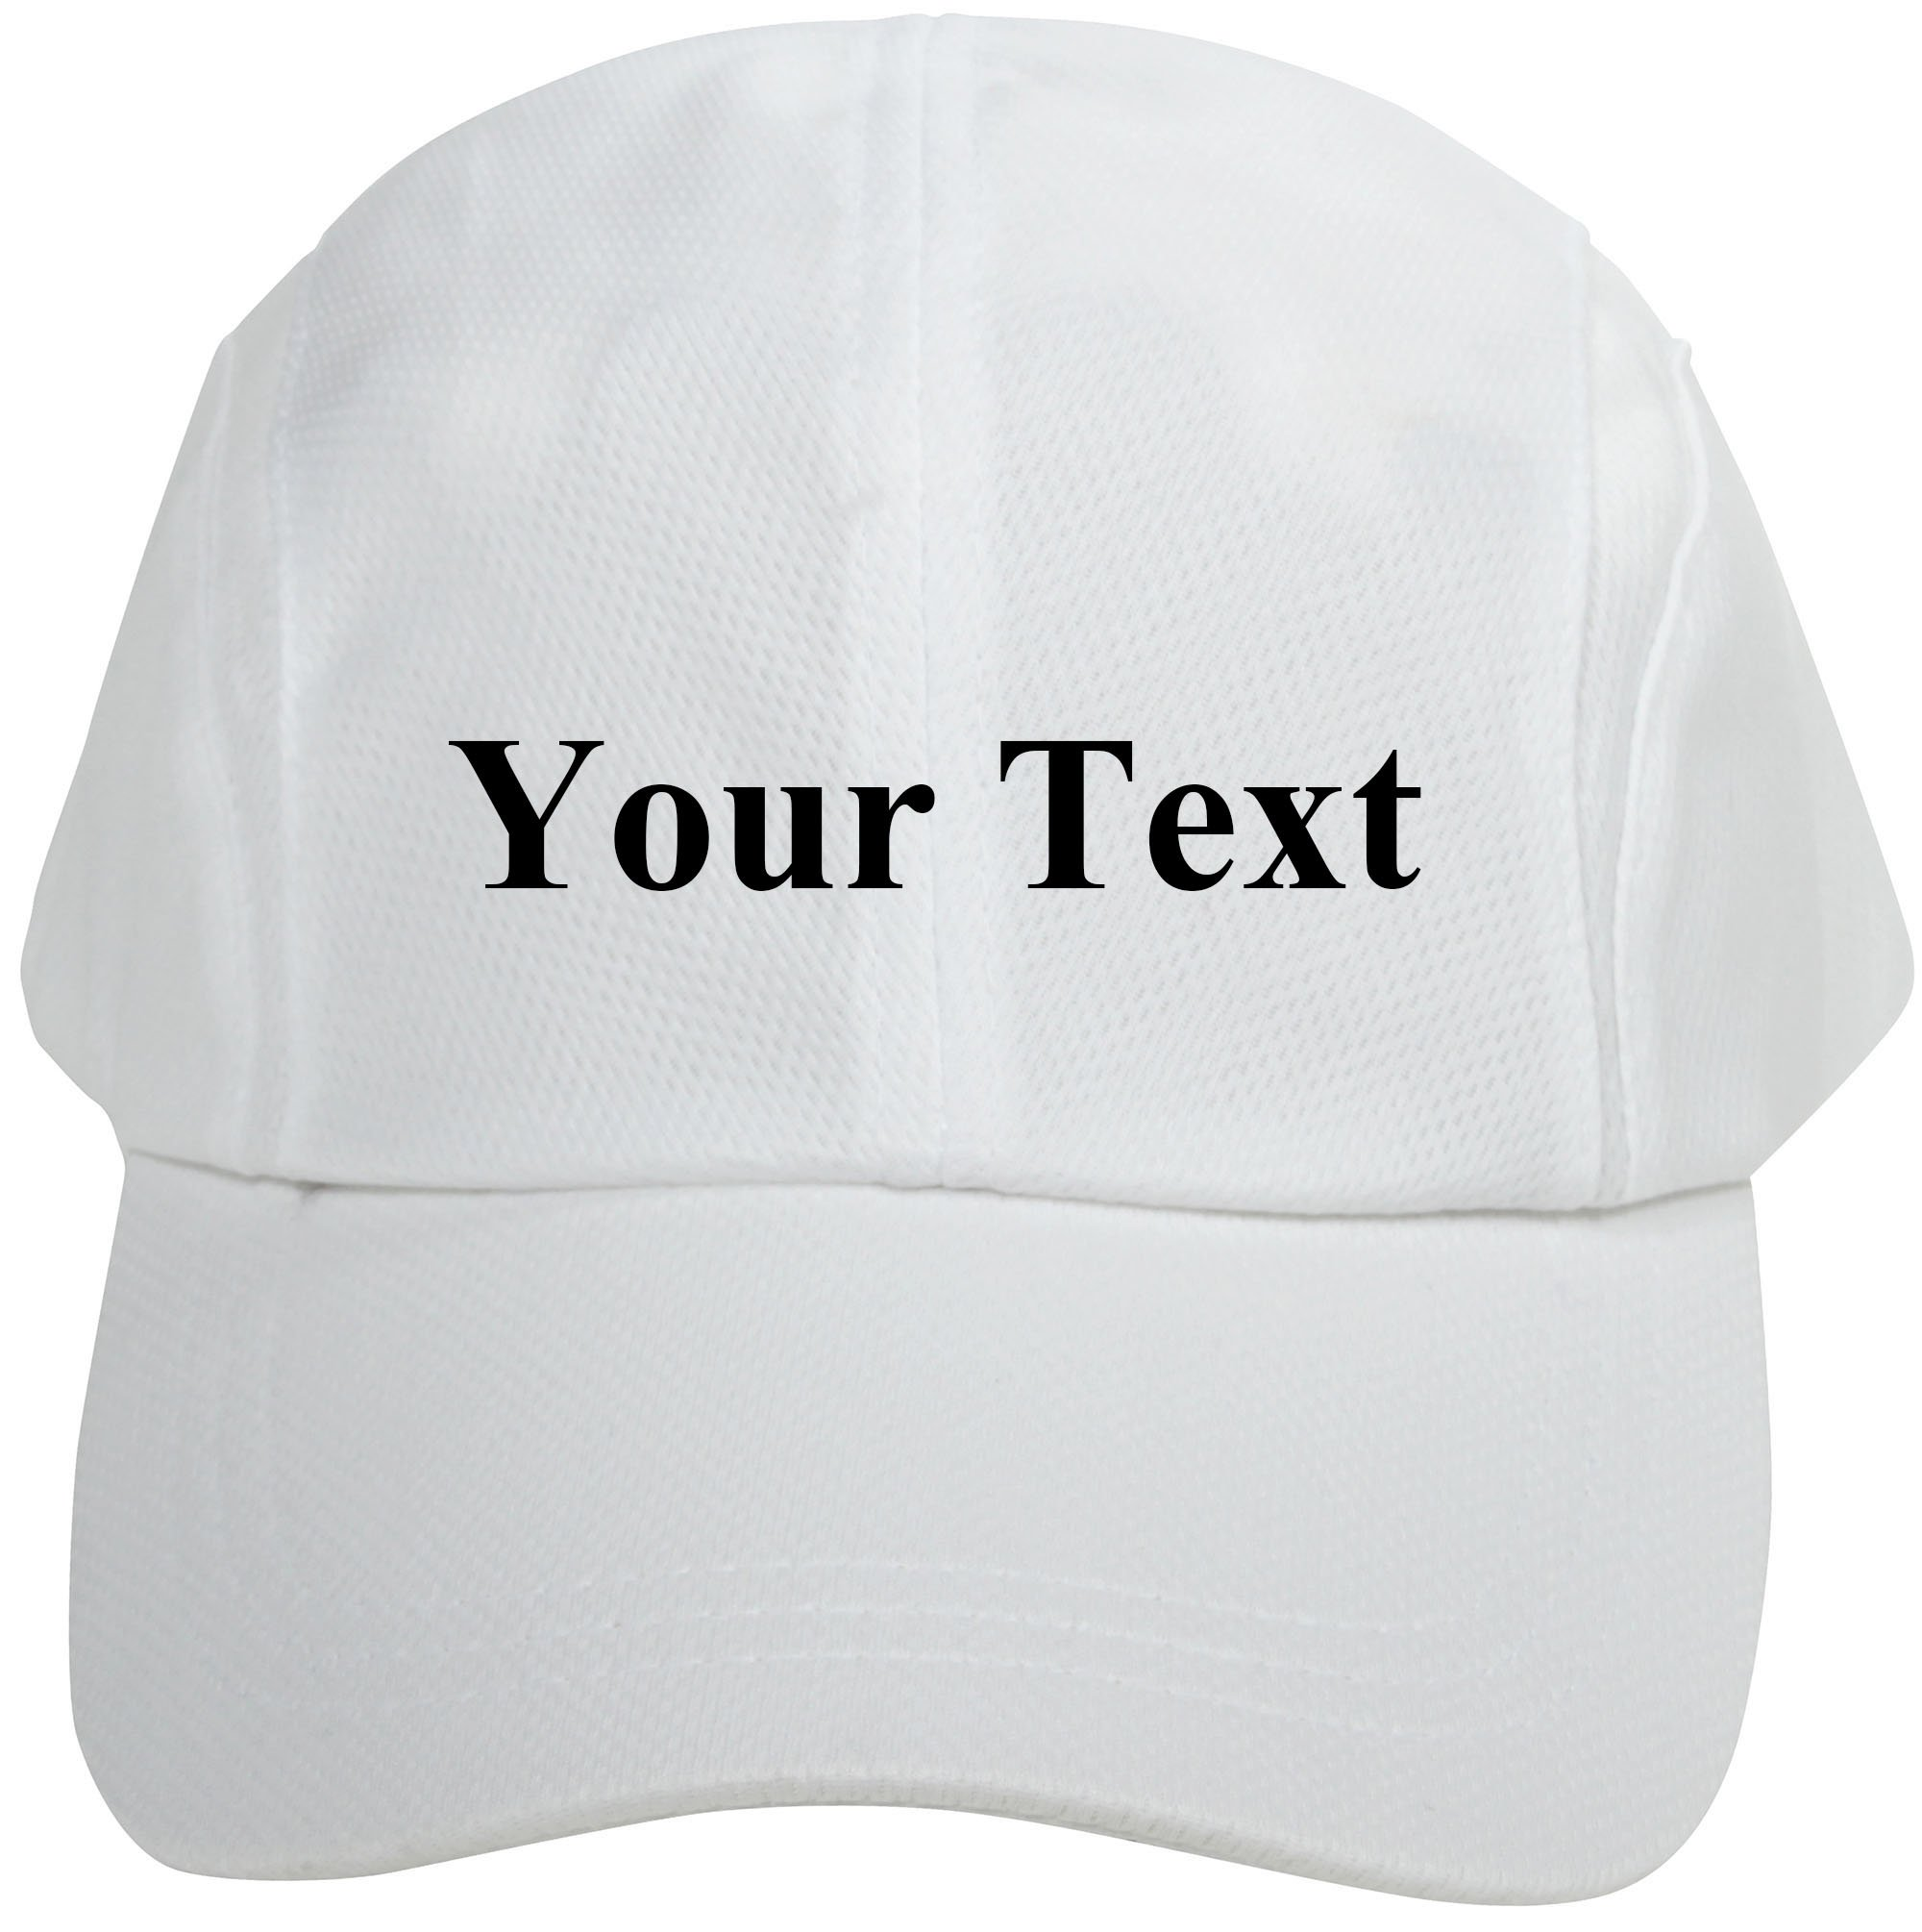 Personalized Unisex Breathable Quick Dry Adjustable Sports Baseball Cap White